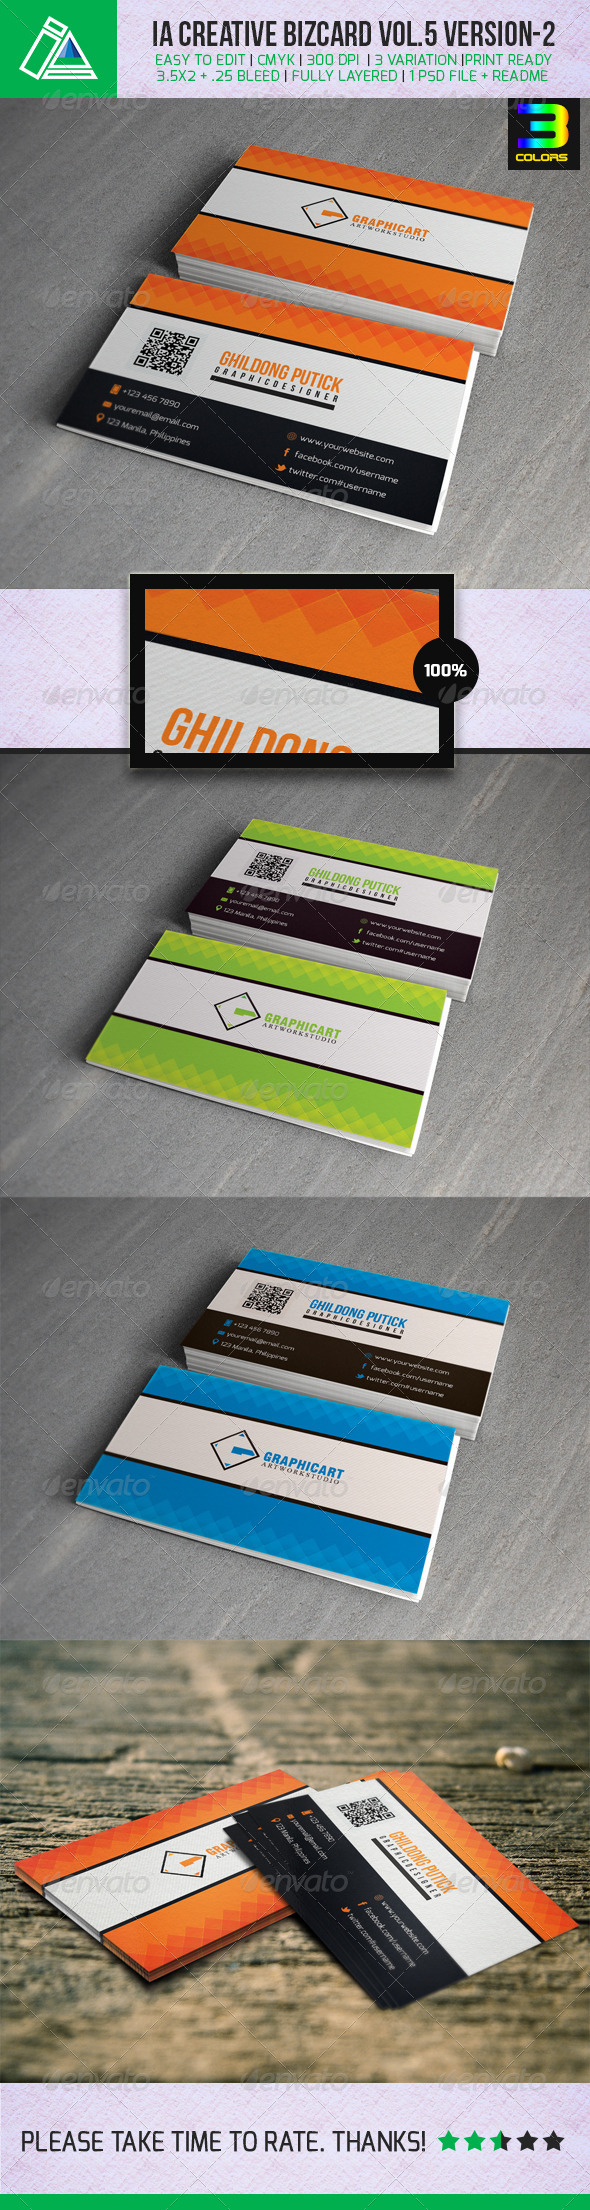 IA Business Card Vol.5 - Version 2 - Corporate Business Cards